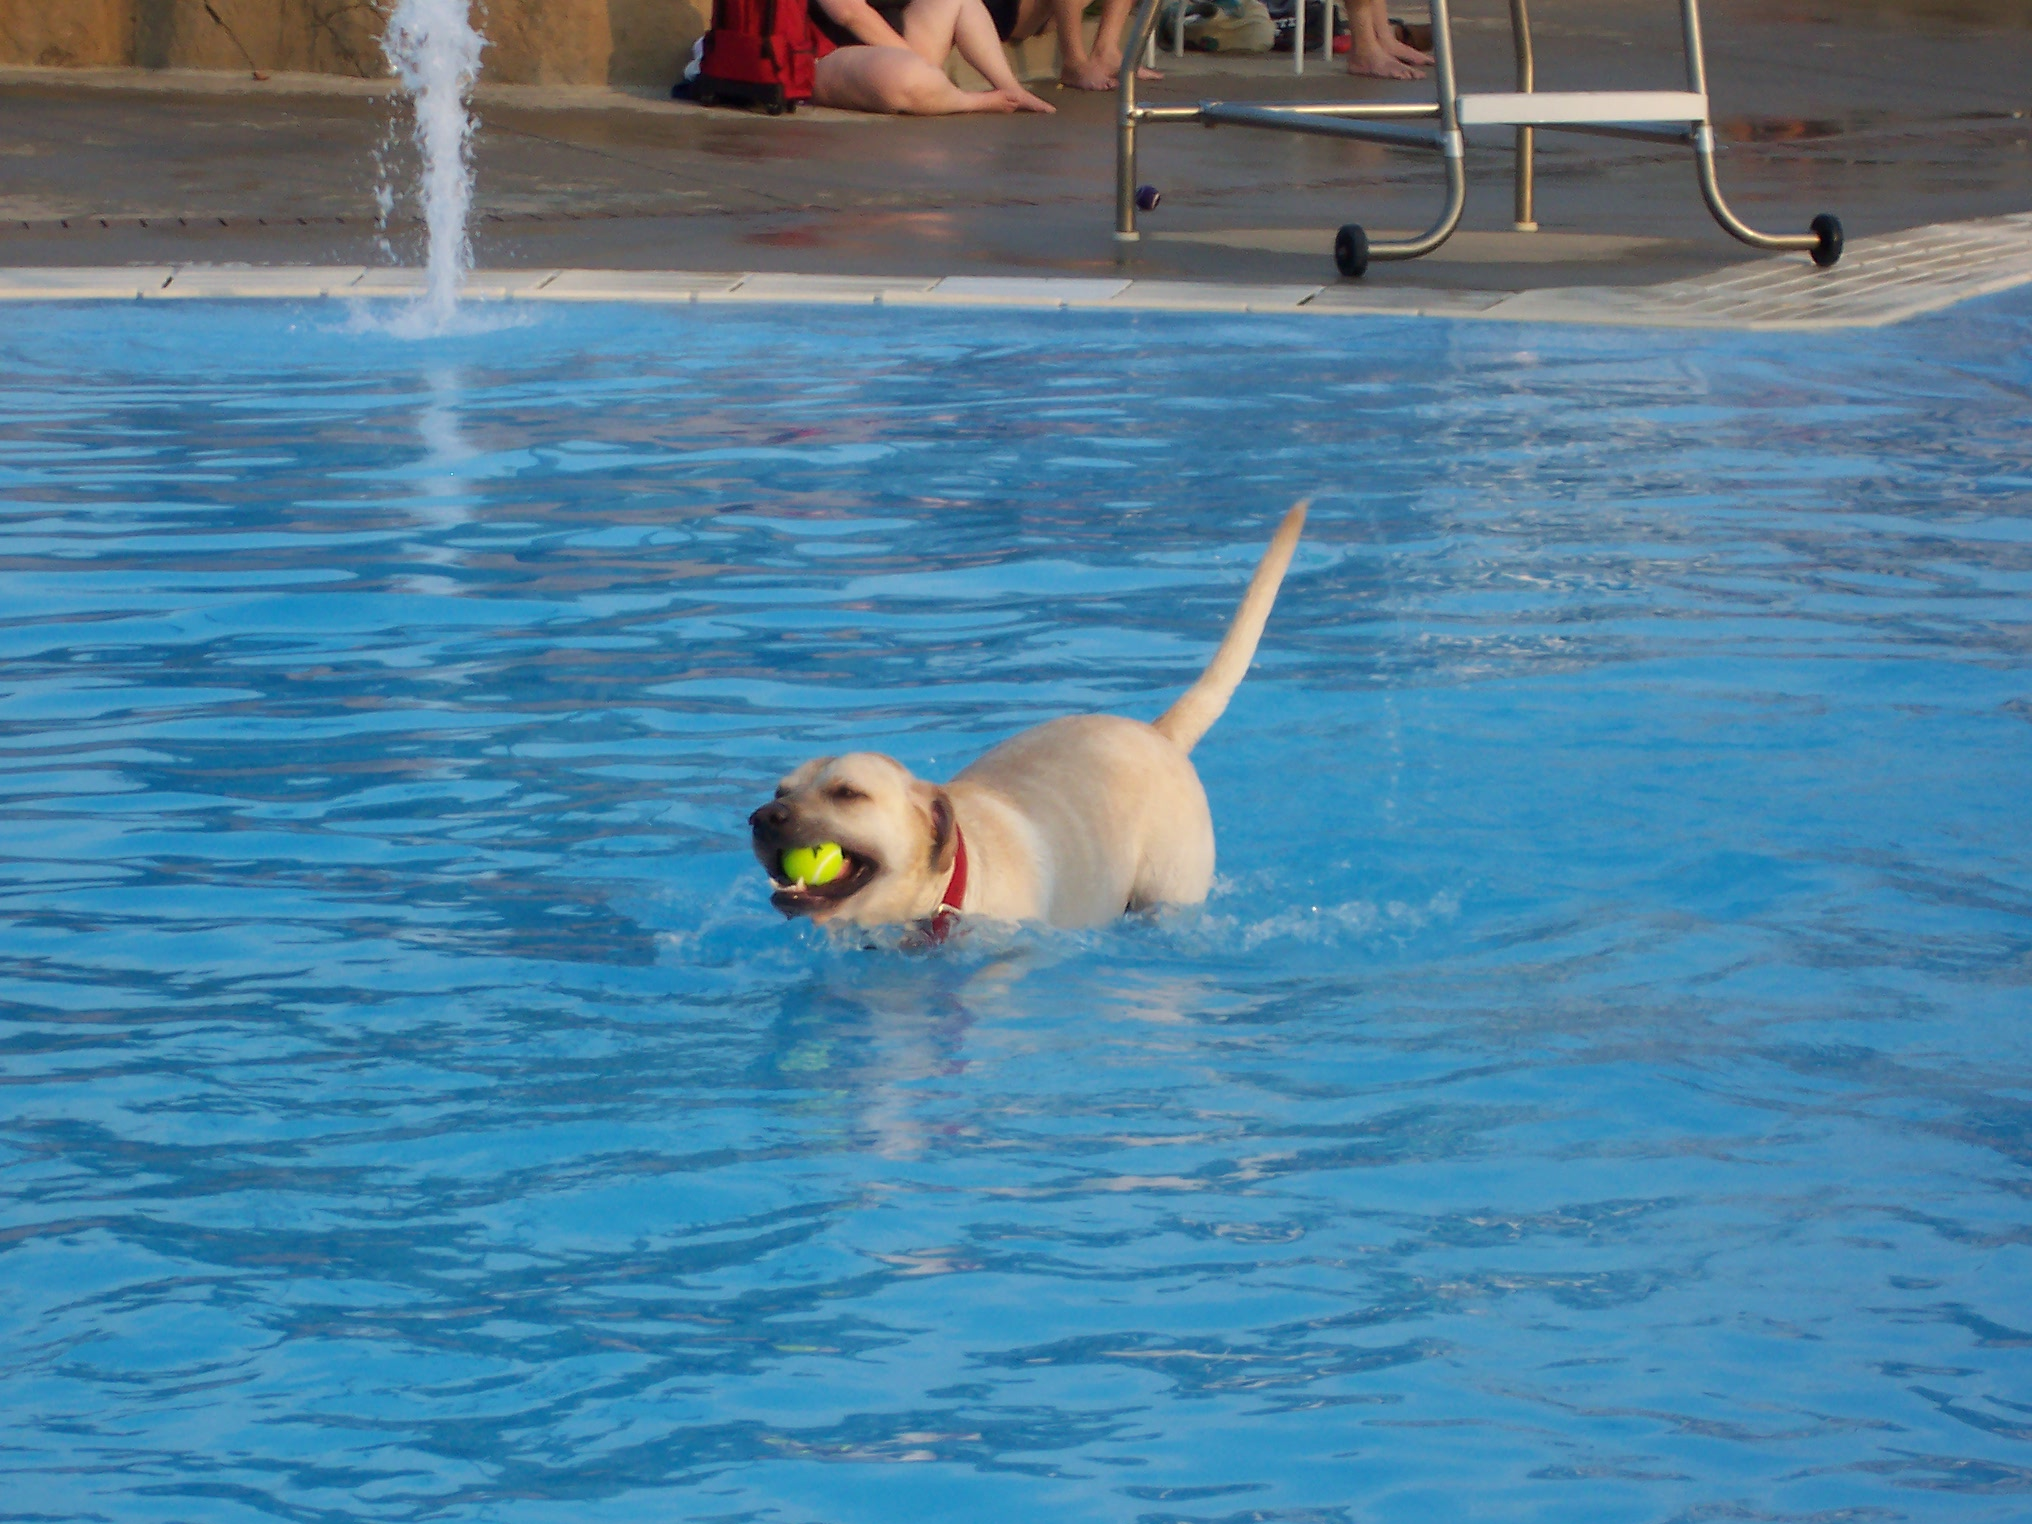 Canine cannonball play kettering Kettering swimming pool timetable